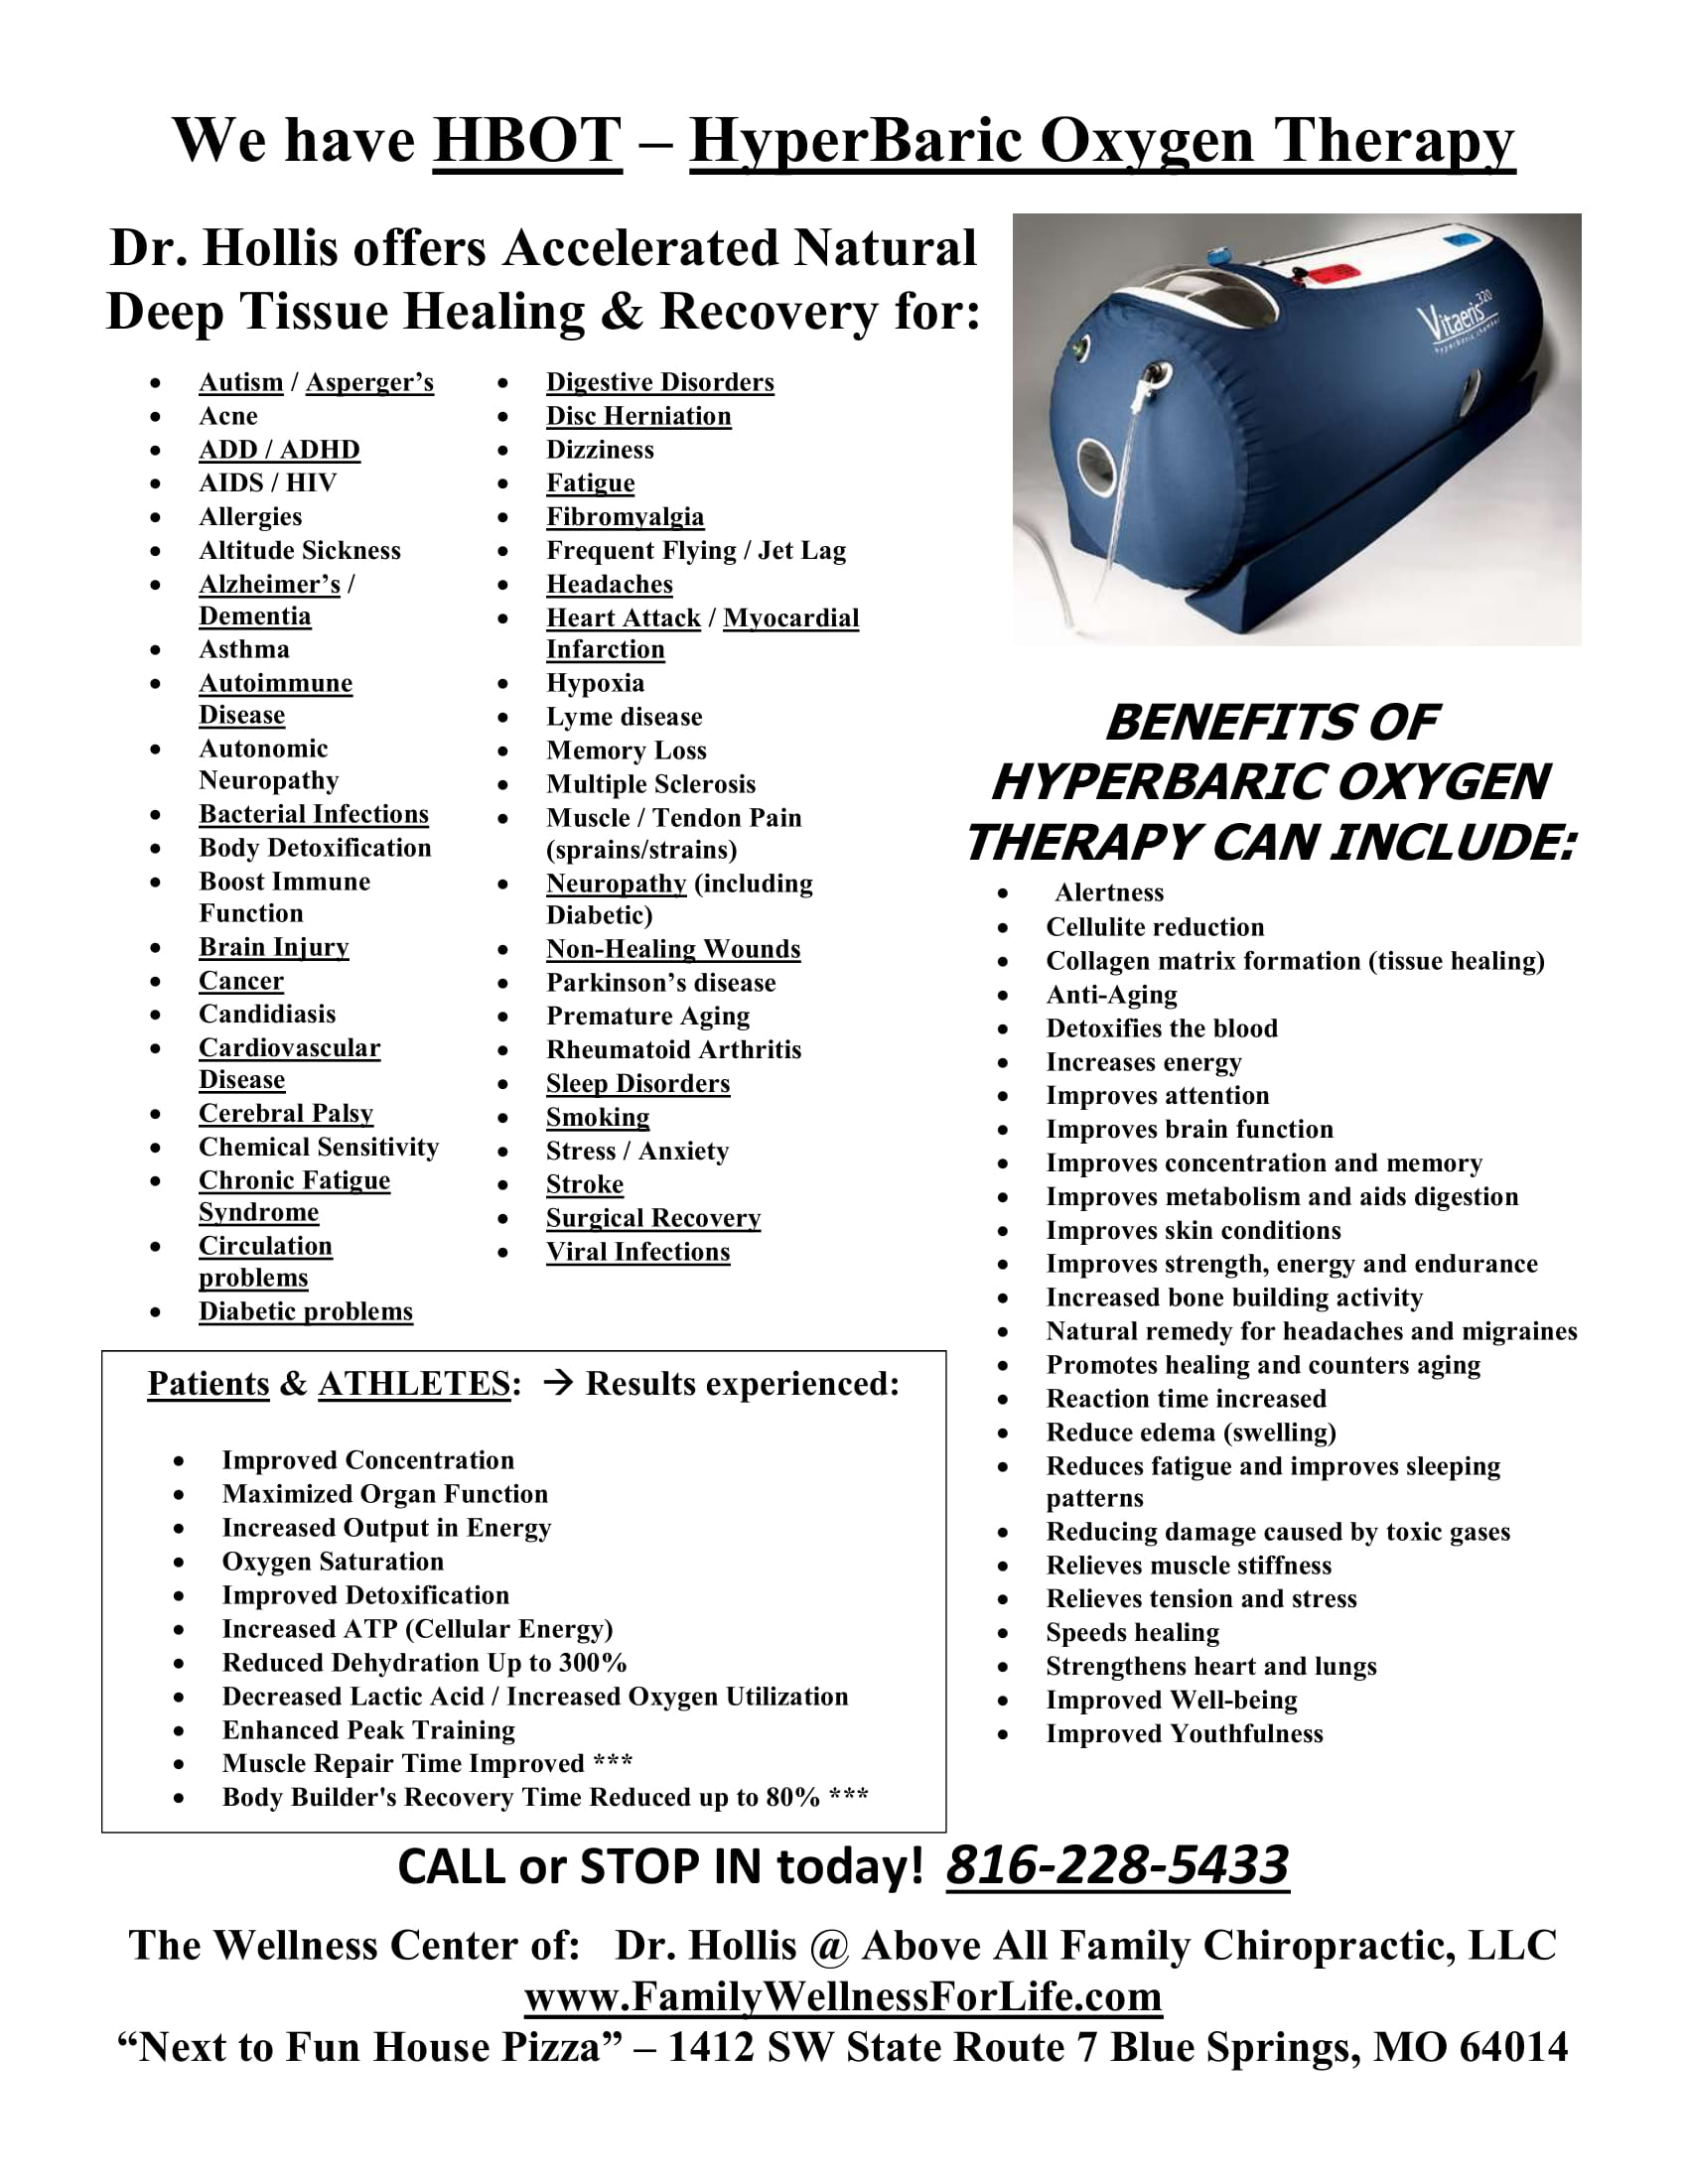 Hyperbaric Oxygen Therapy | Above All Family Chiropractic